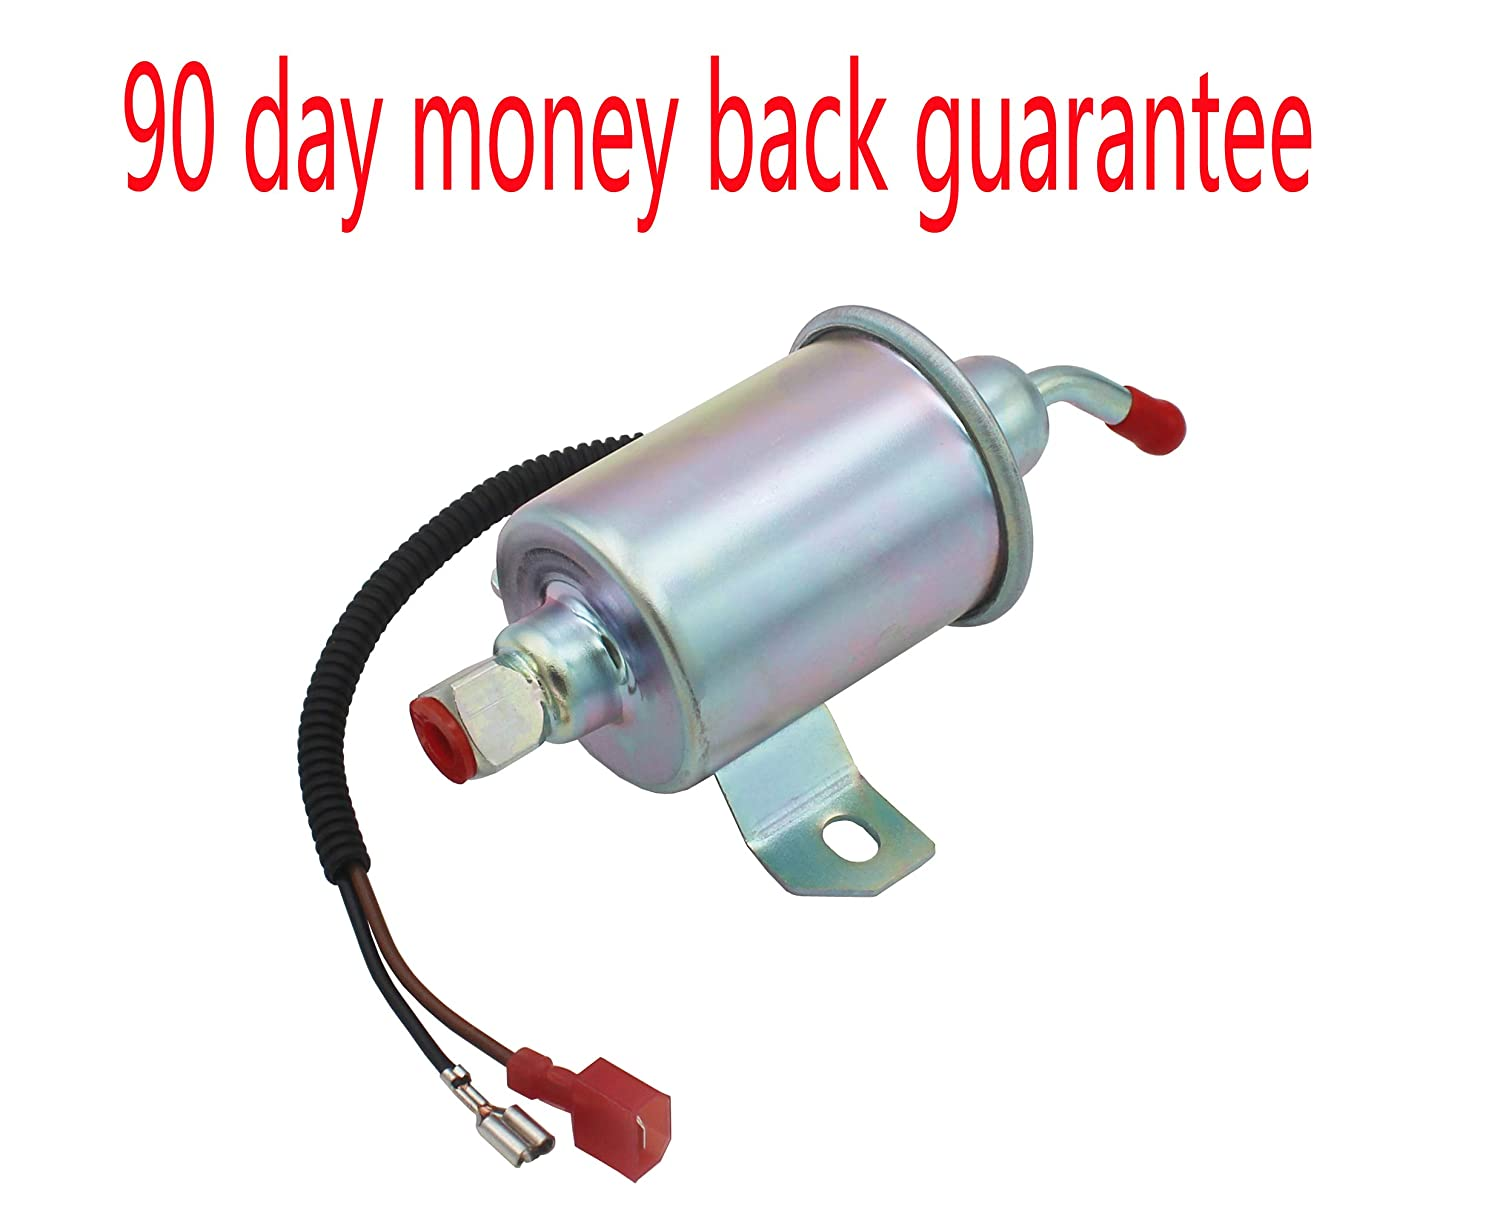 Electric Fuel Pump Replaces of Cummins Model # A029F889 ONAN #149-2311#149-2311-02 Airtex E11006 Spectra SP8124 Herko Automotive RV004.